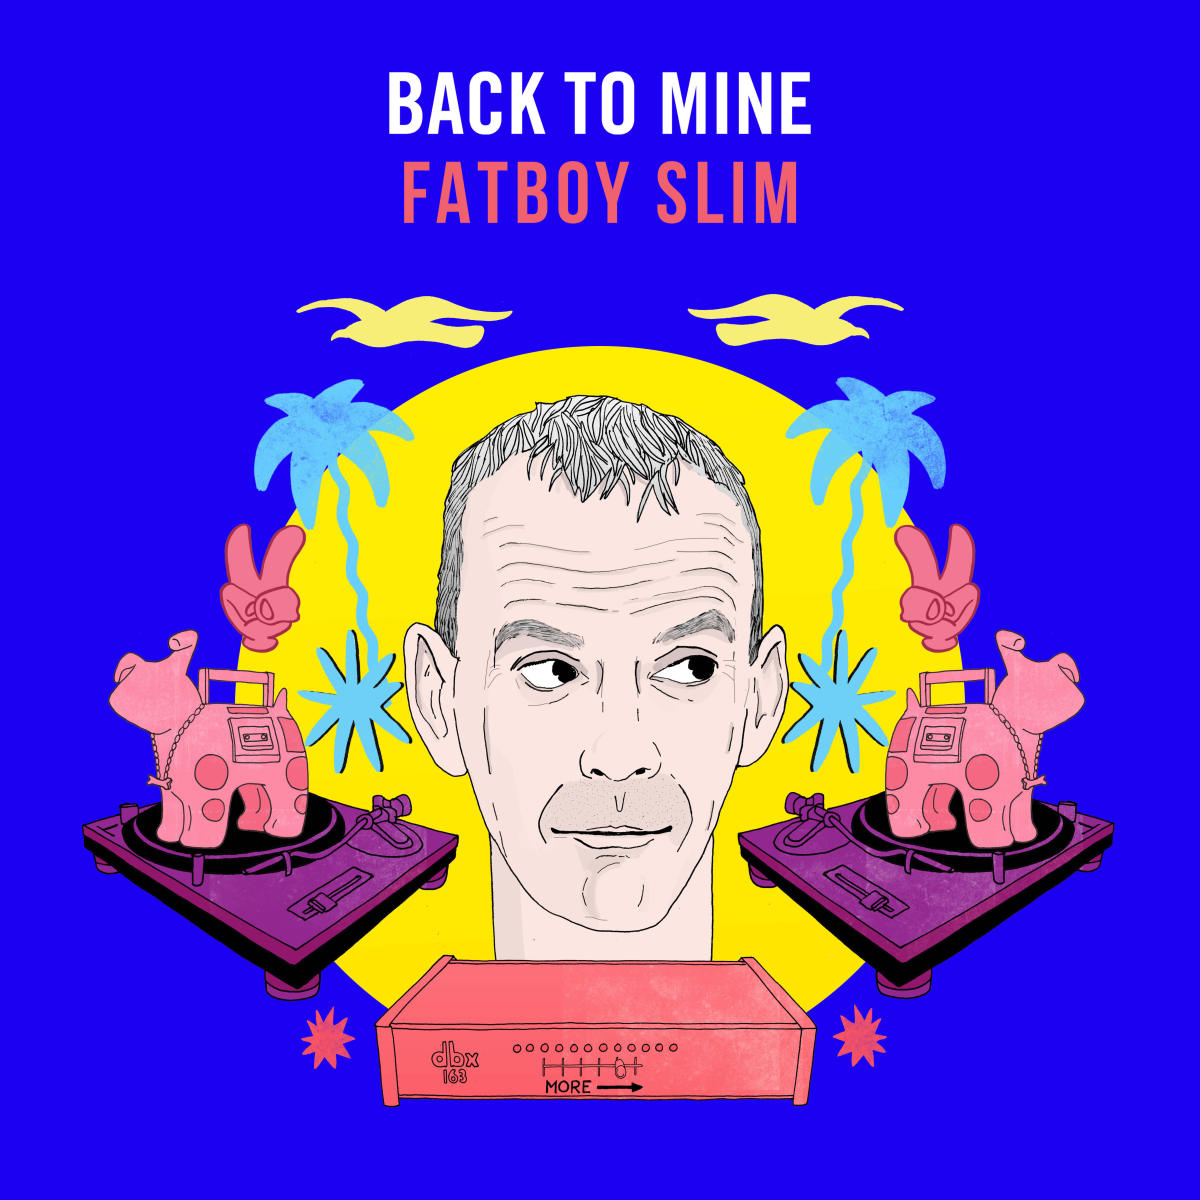 Back To Mine from Fatboy Slim